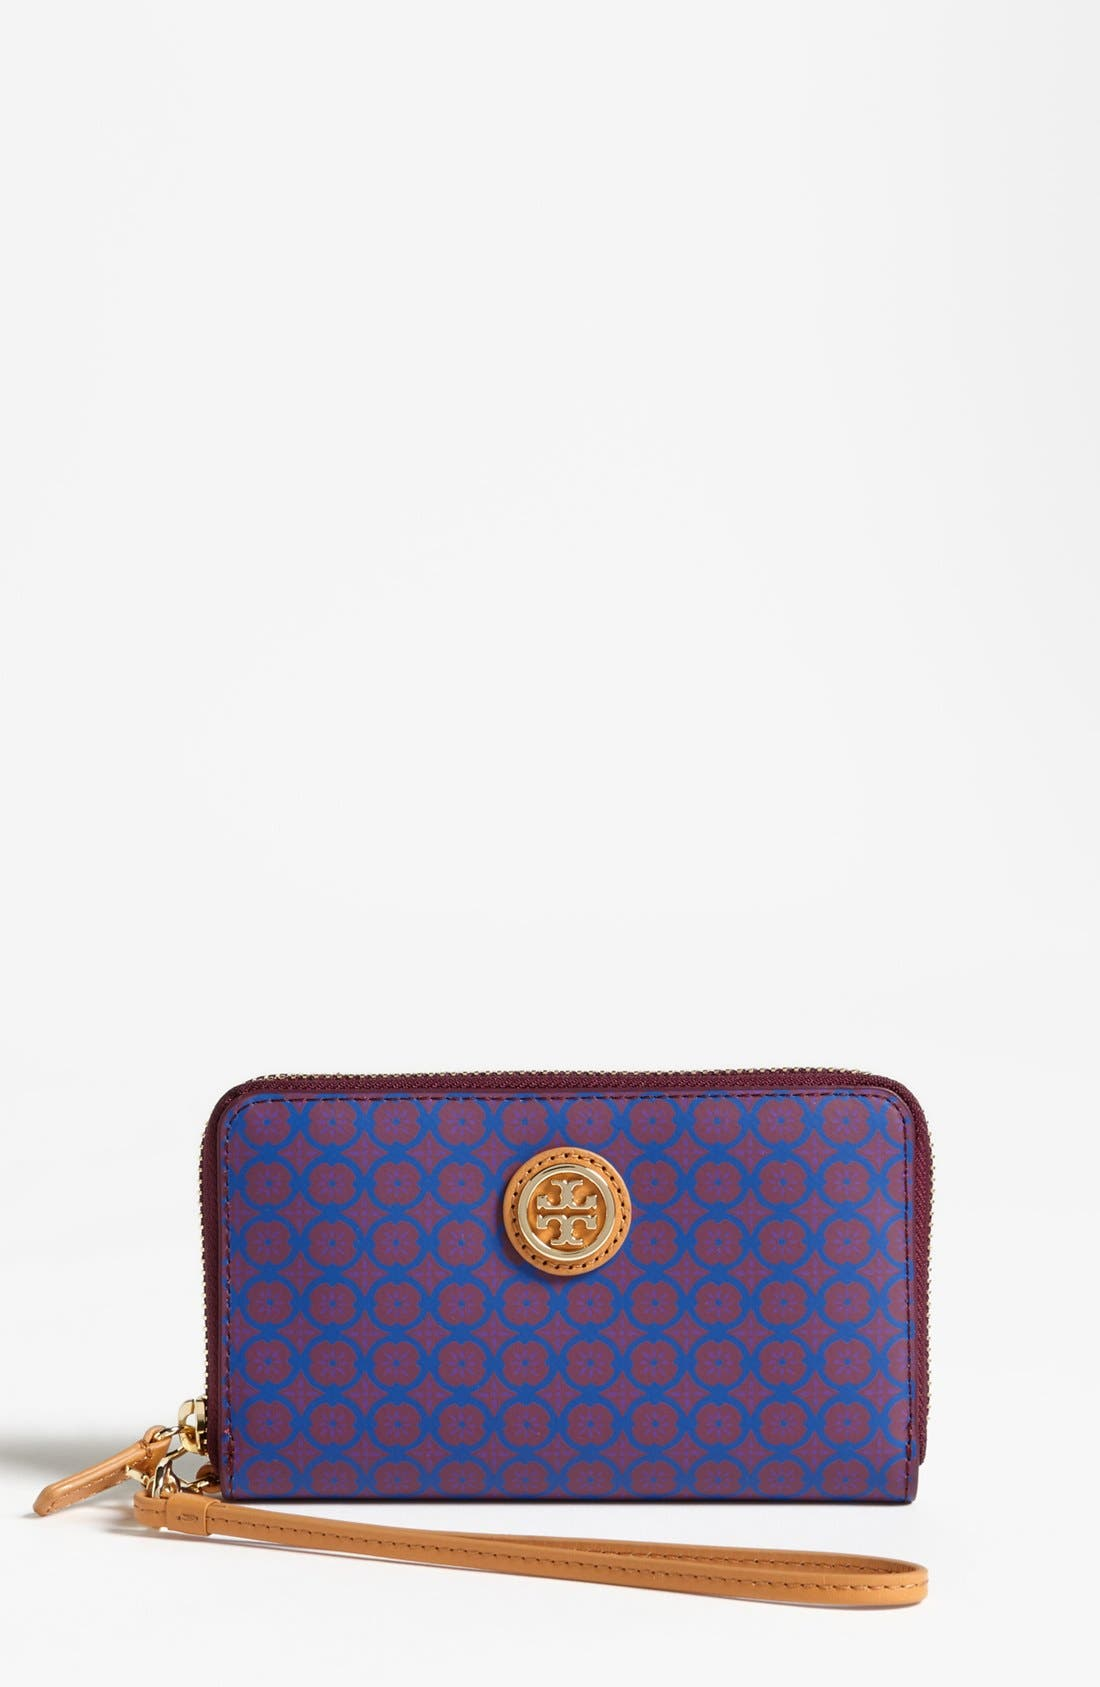 Main Image - Tory Burch 'Halland' Smart Phone Wristlet